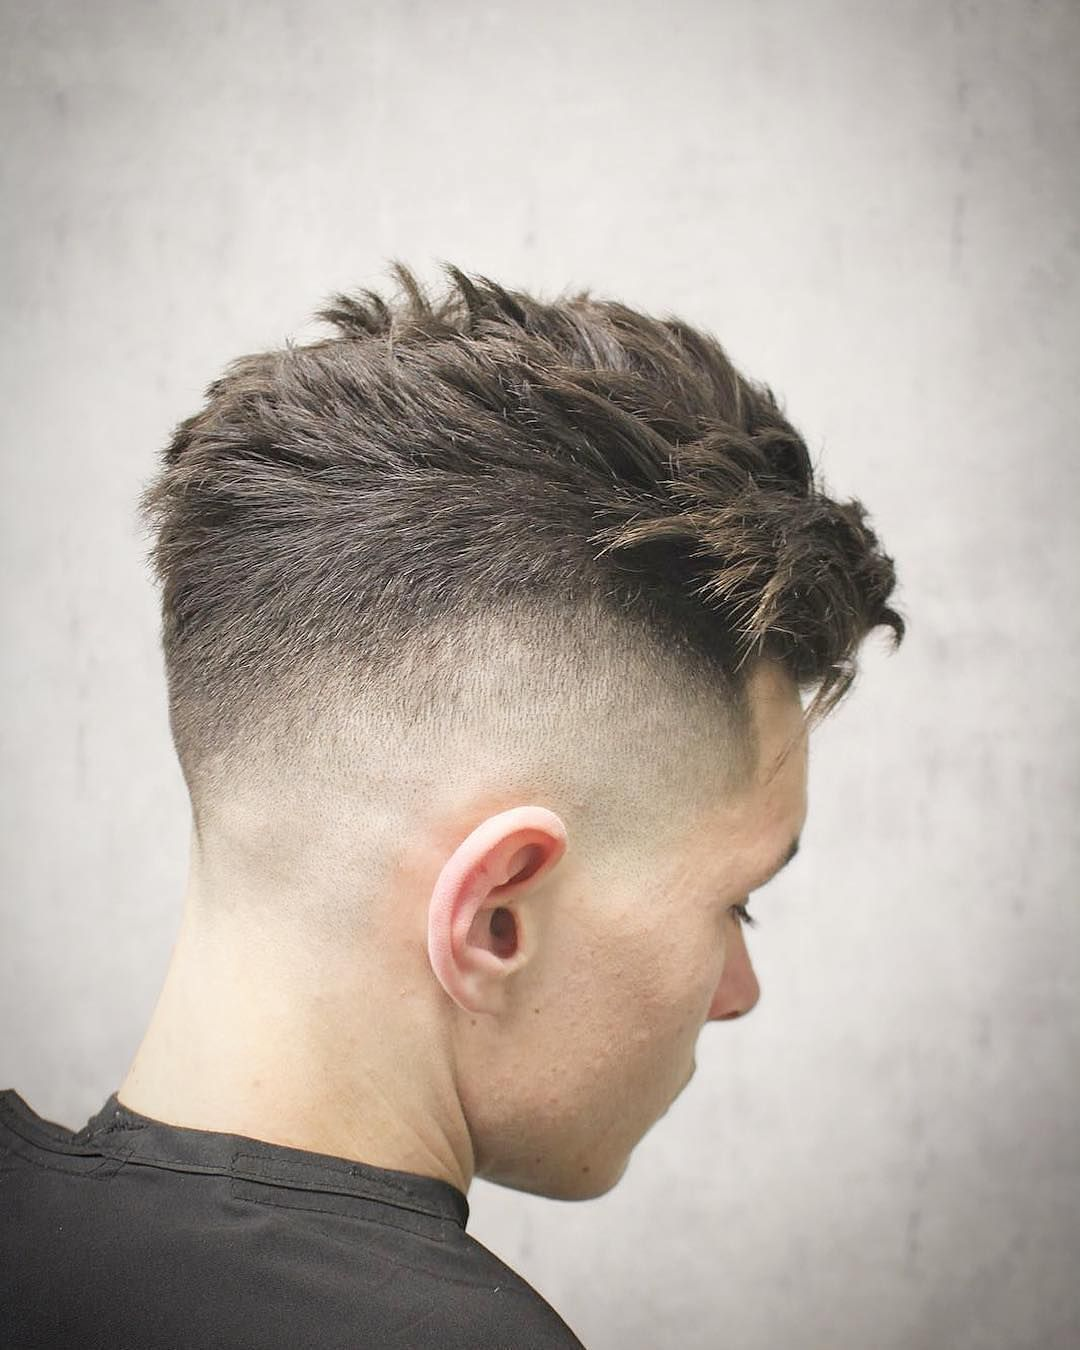 Taper Vs Fade Vs Taper Fade Haircuts Learn The Difference Taper Fade Haircut Fade Haircut Mens Haircuts Fade